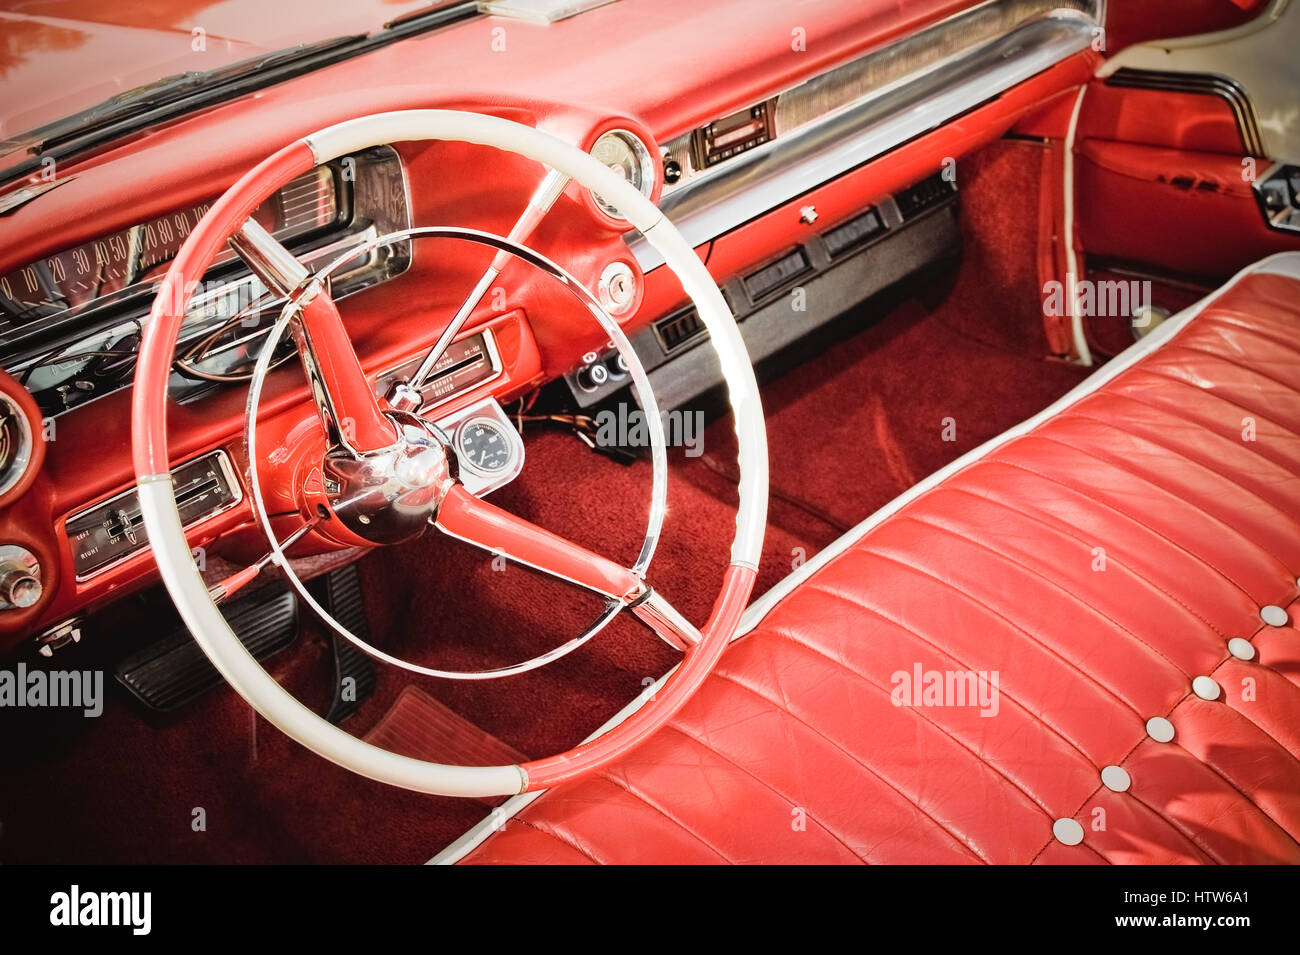 Classic american car interior with red leather upholstery for American classic interior